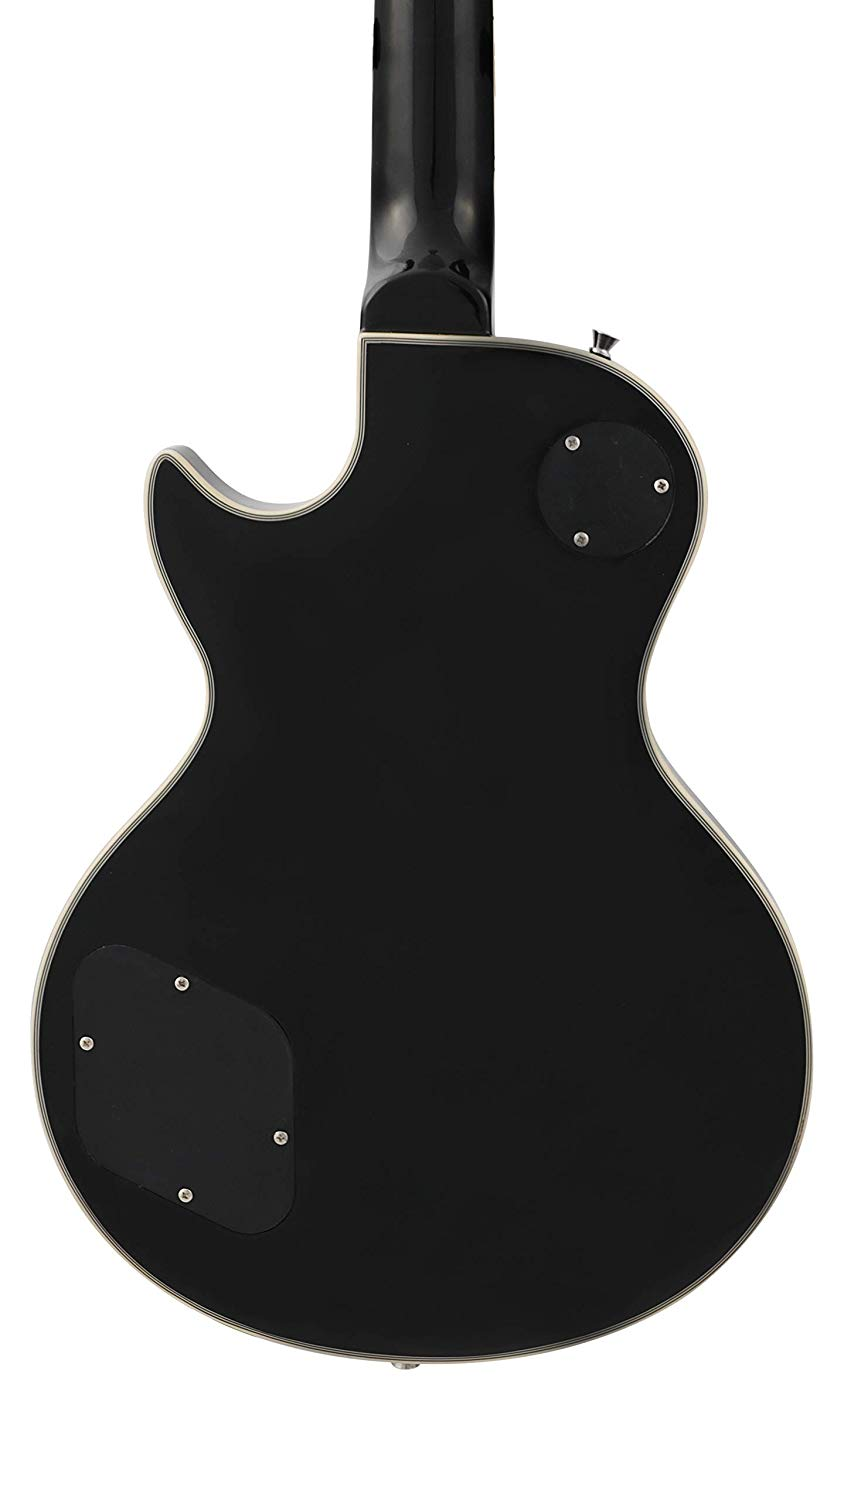 Rear View of the Leo Jaymz Cutaway Acoustic Guitar